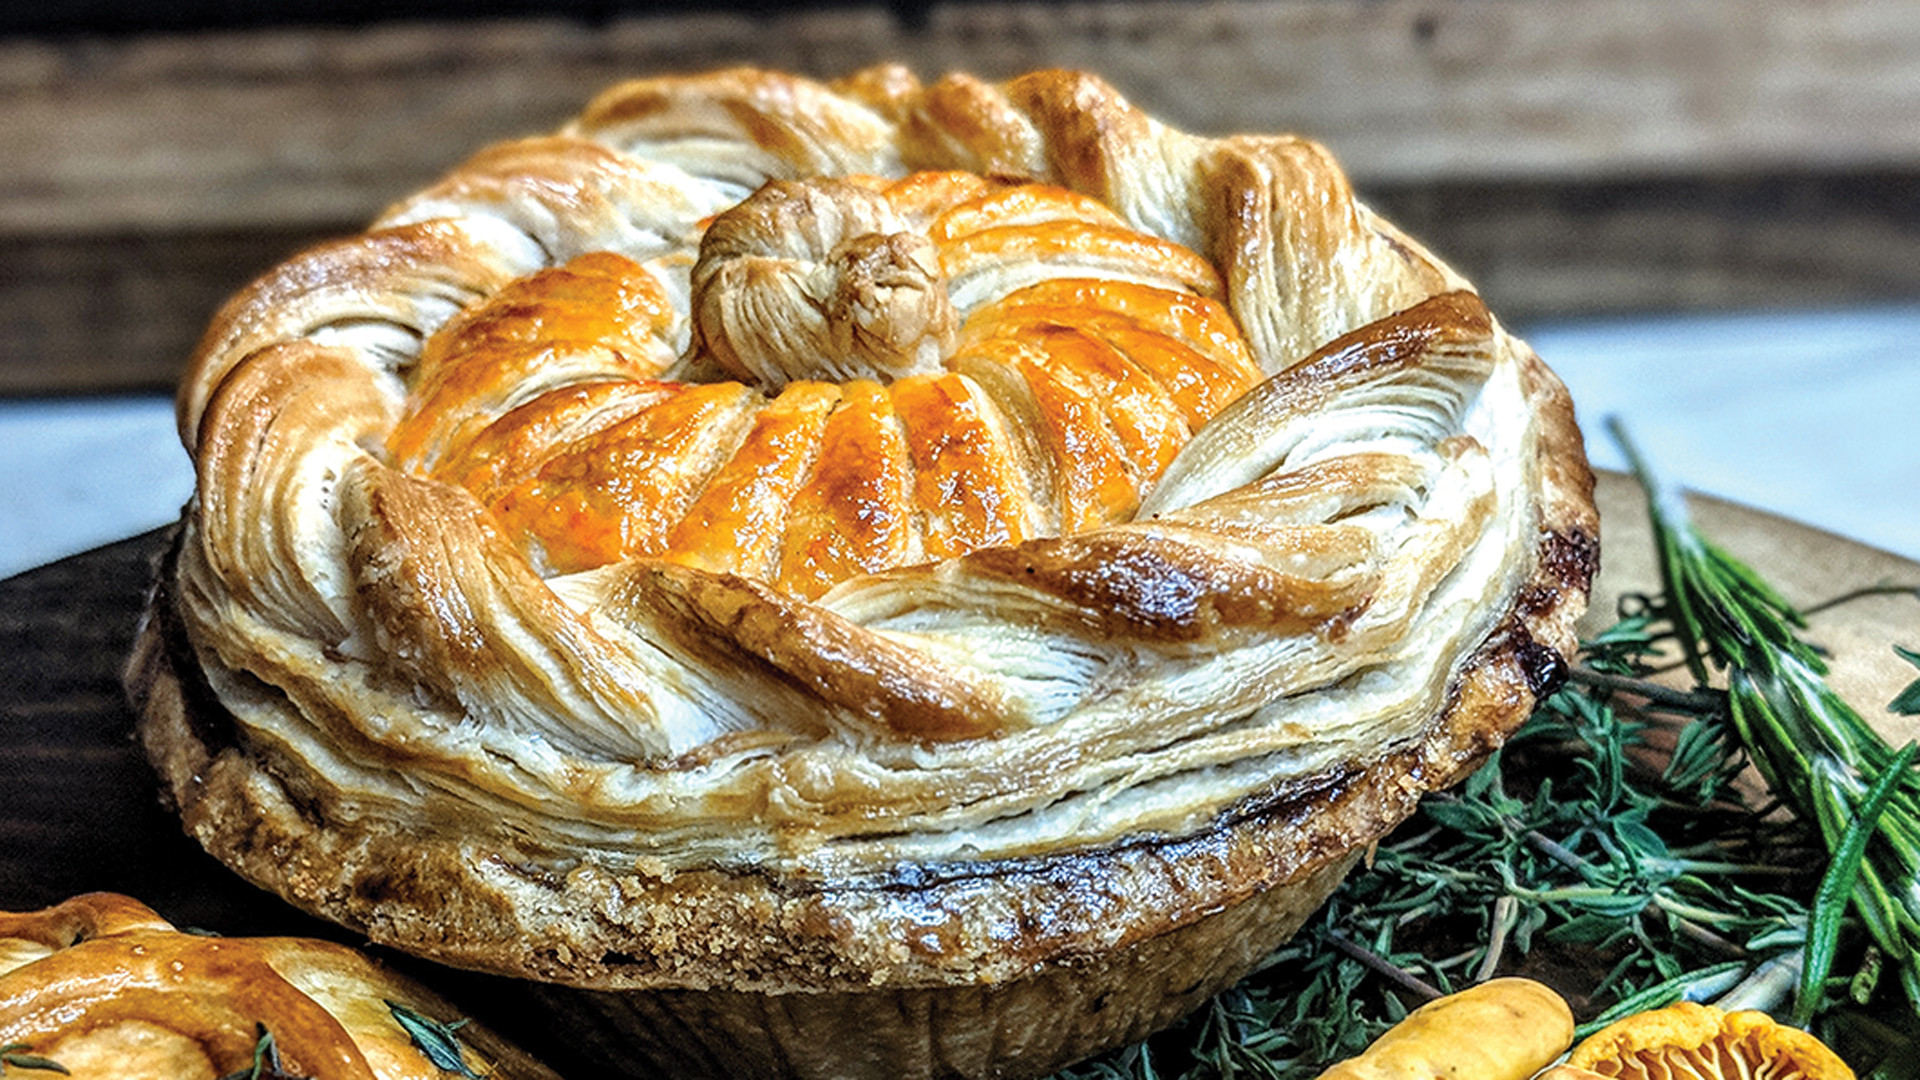 The best pie places in Toronto | Reindeer pumpkin pie from the Tempered Room